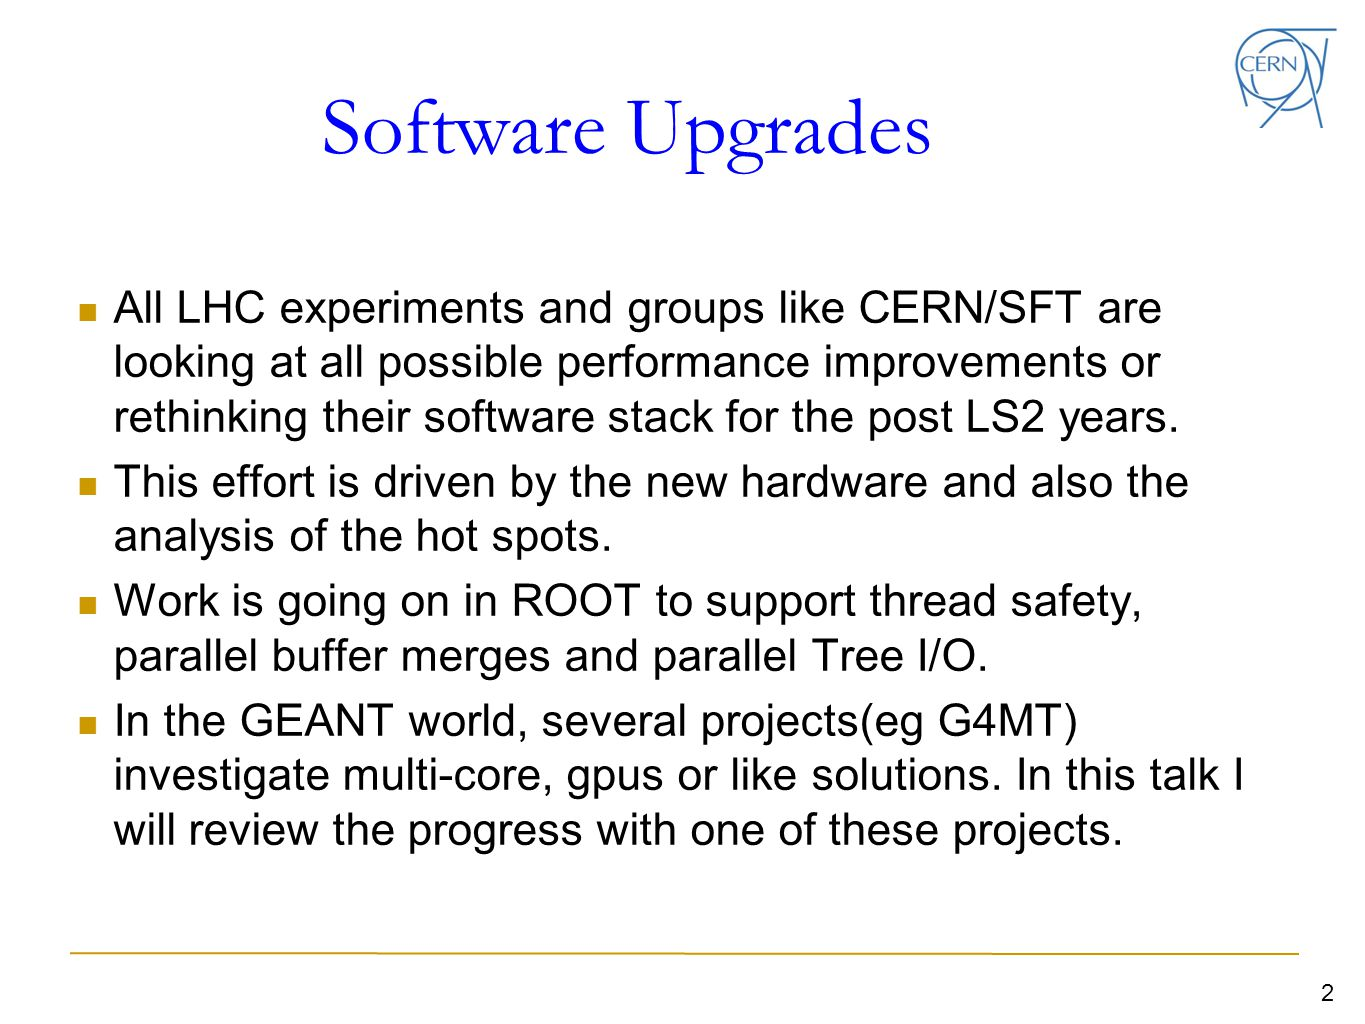 Software Upgrades All LHC experiments and groups like CERN/SFT are looking at all possible performance improvements or rethinking their software stack for the post LS2 years.